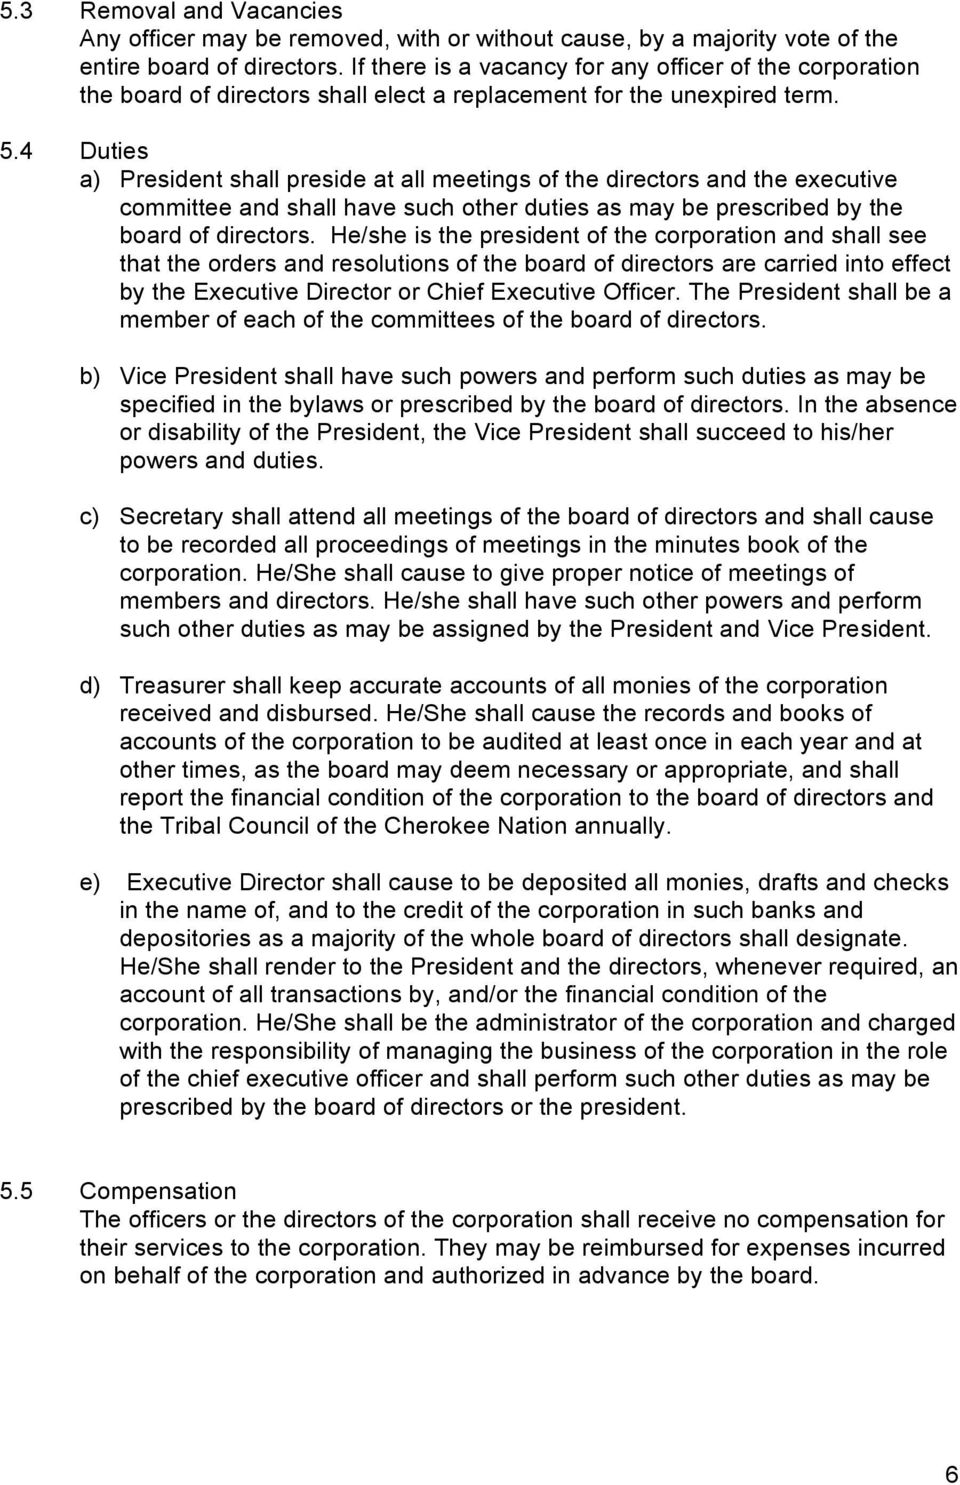 4 Duties a) President shall preside at all meetings of the directors and the executive committee and shall have such other duties as may be prescribed by the board of directors.